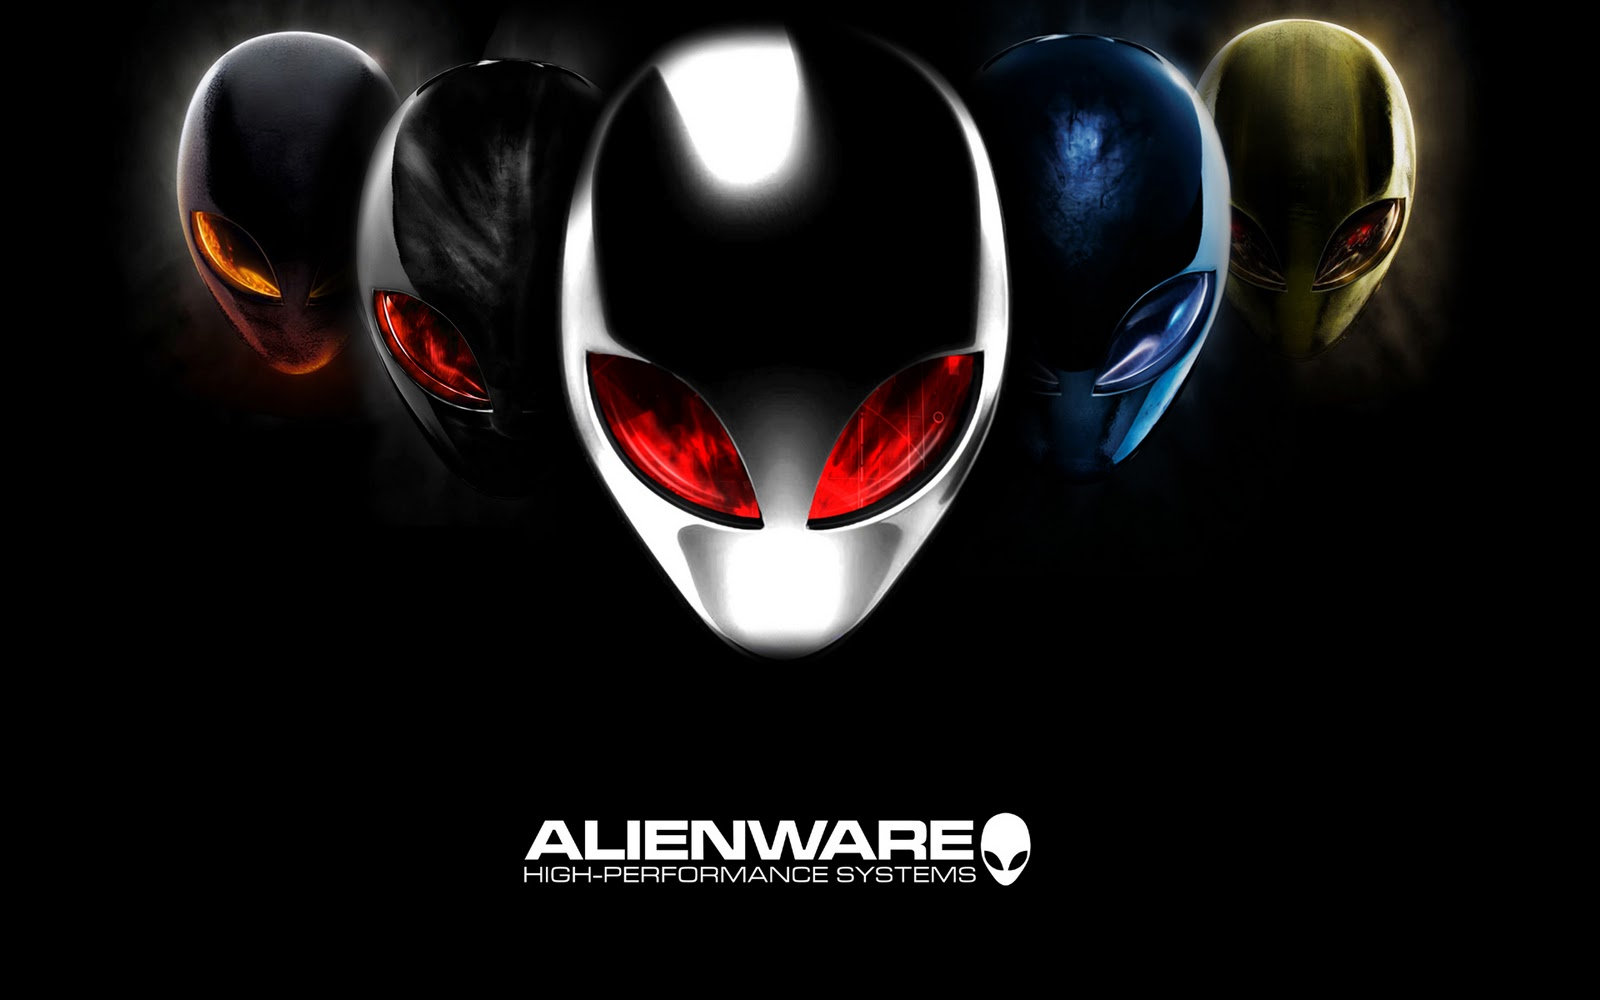 20 Spectacular Alienware Wallpapers For Desktop 1600x1000